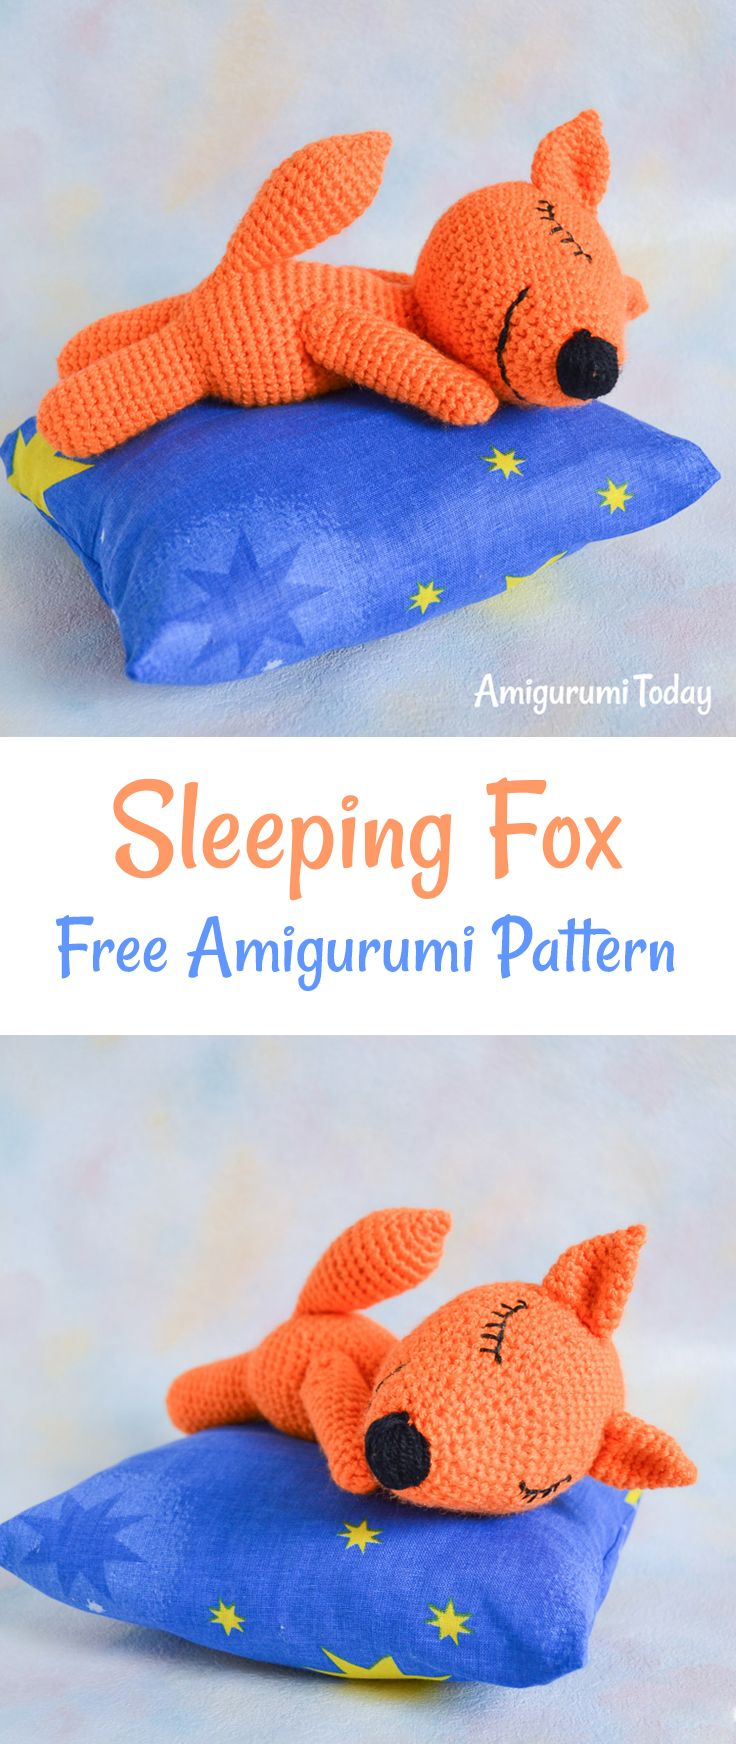 This adorable sleeping fox helps naughty babies to fall asleep and see beautiful dreams :) You can make the toy by your own on the basis of our amigurumi pattern.